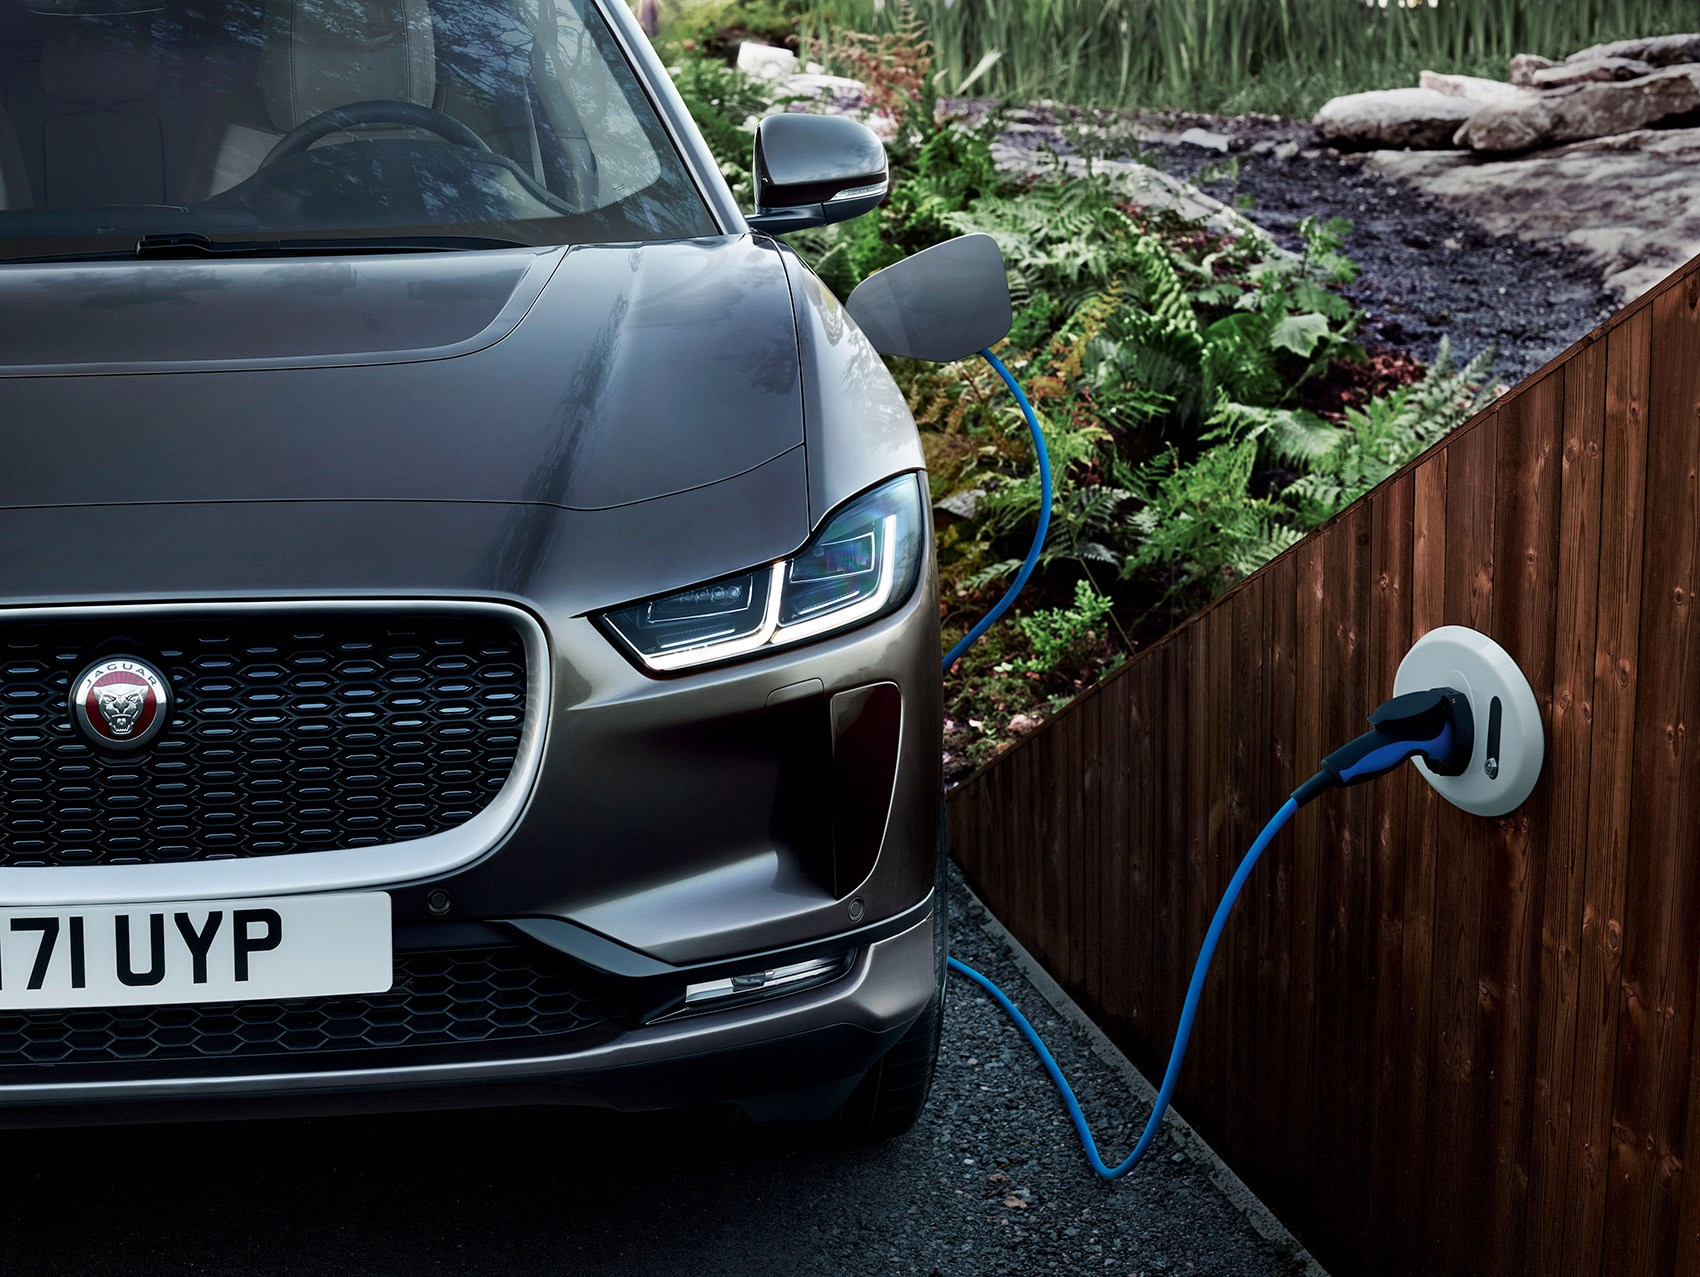 Britainu0027s Best Electric Cars: We Reveal UKu0027s Smart EV Picks